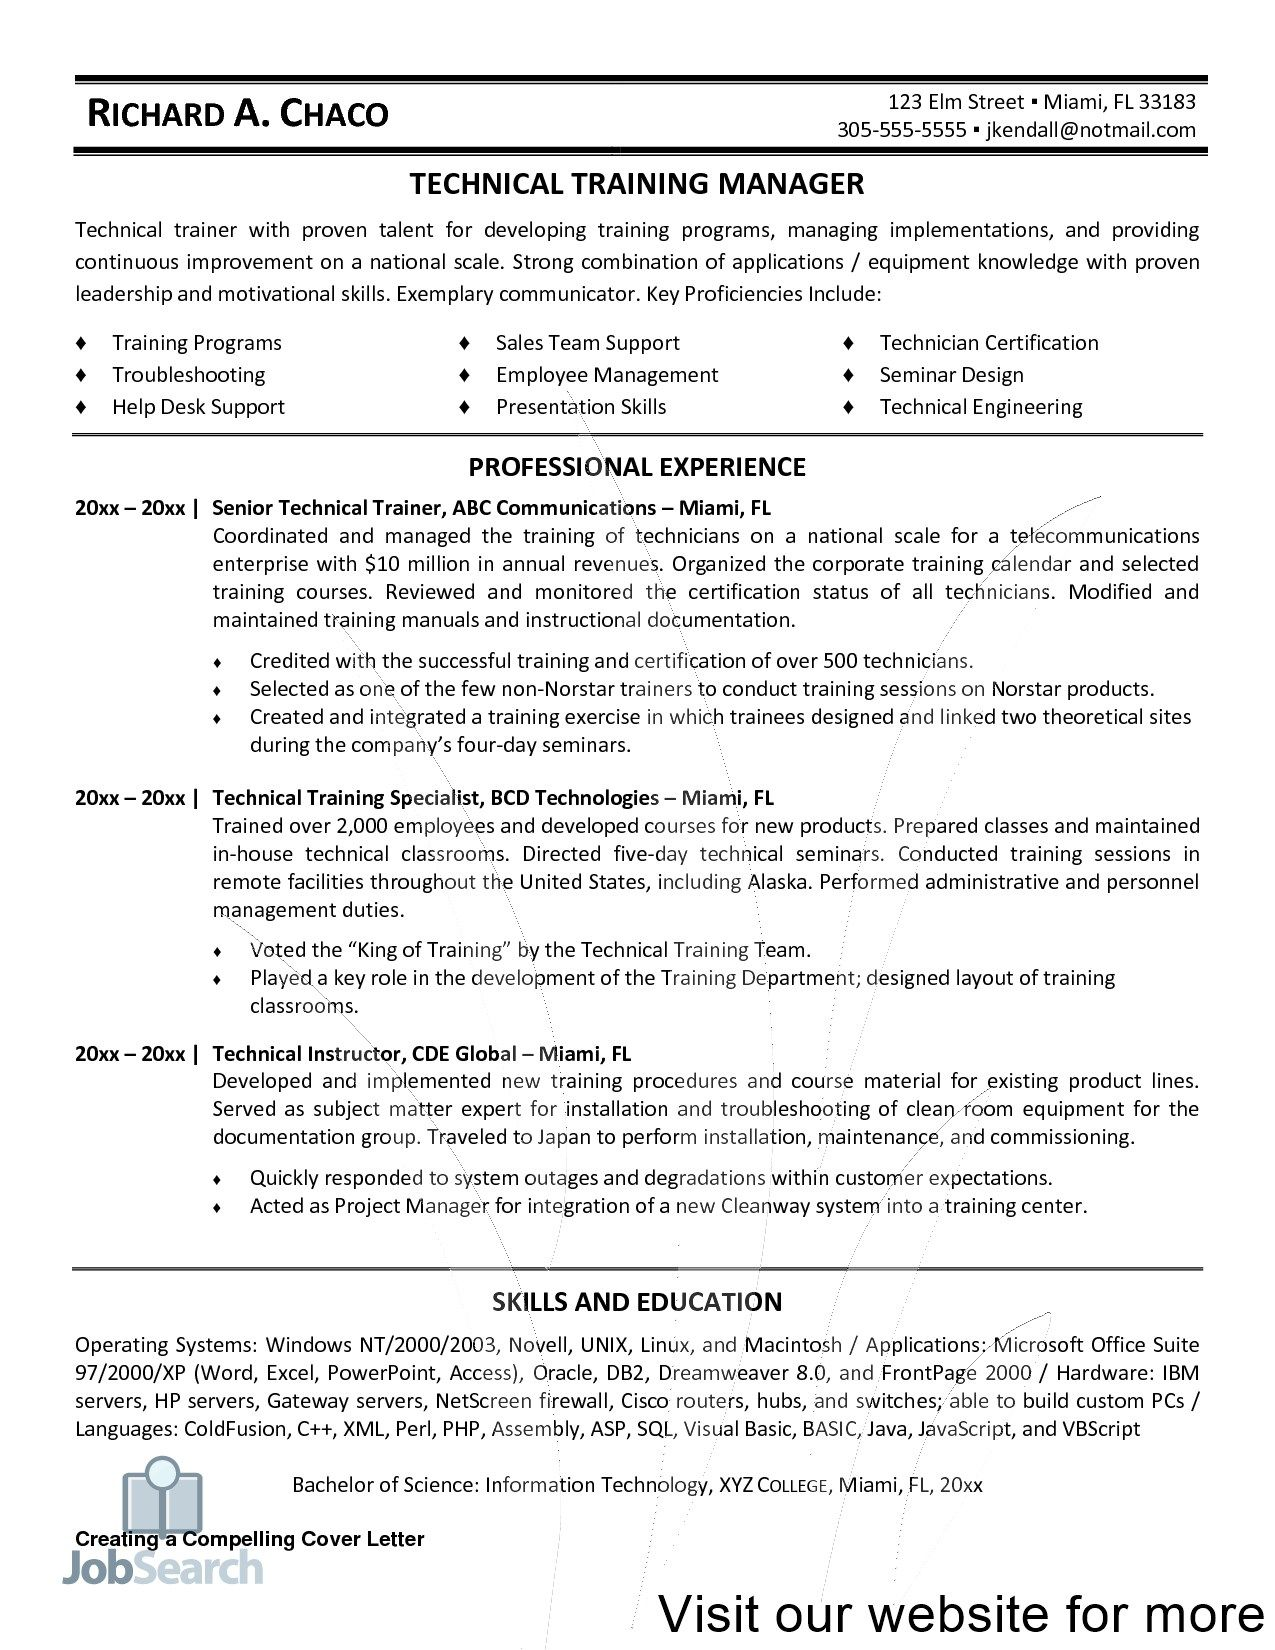 resume template free professional in 2020 Resume